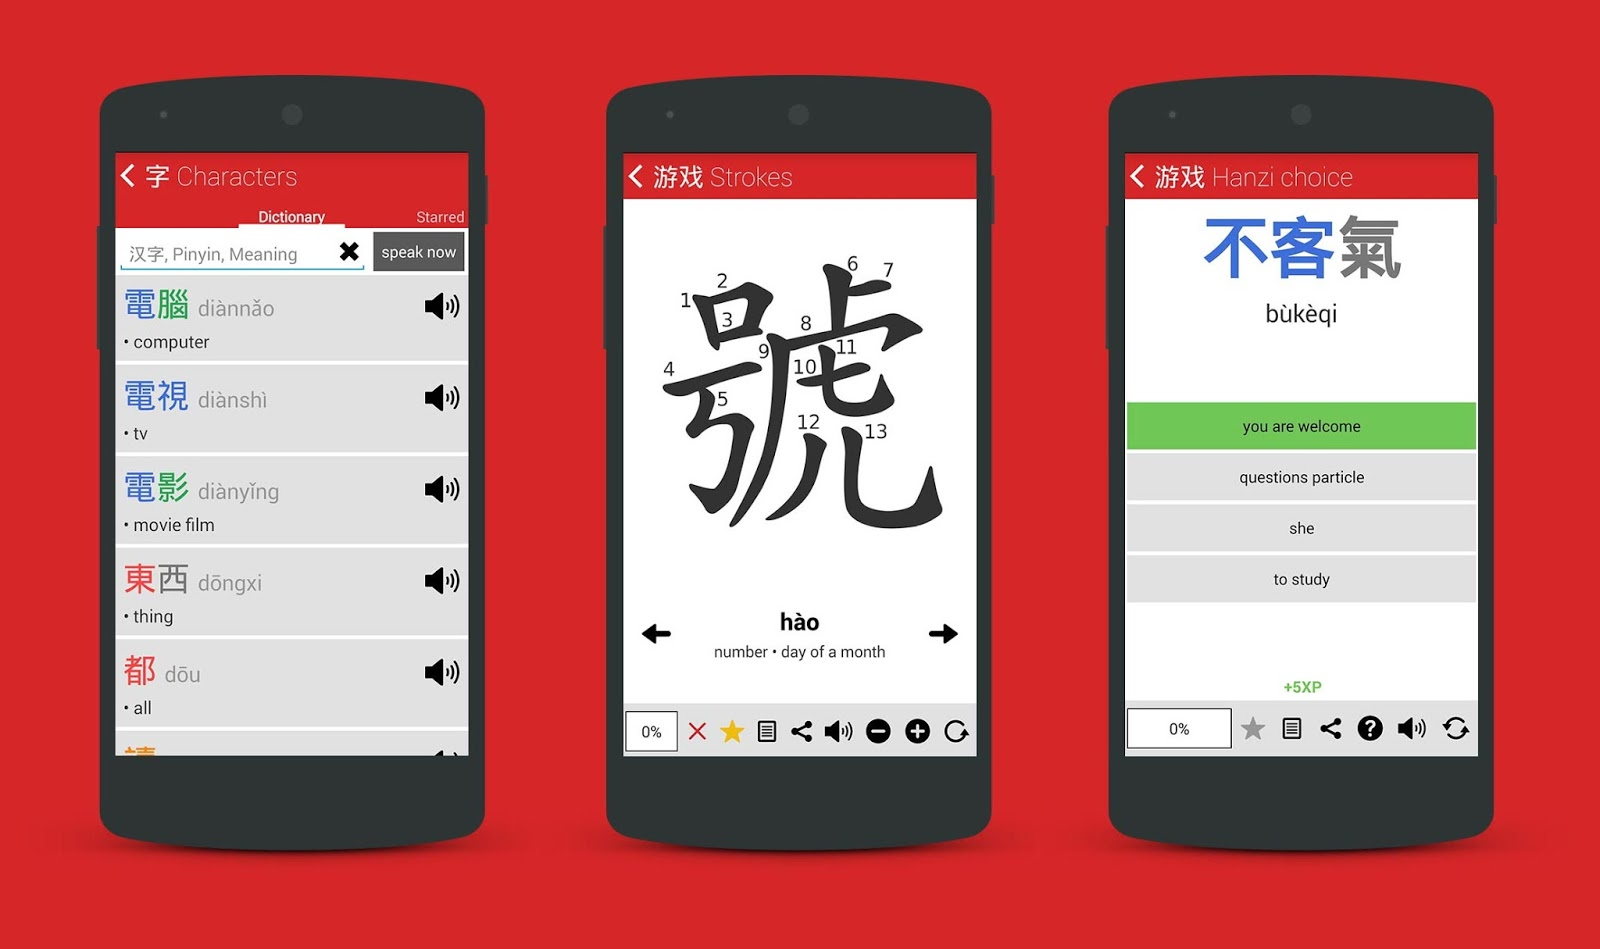 Chinese HSK level 1 app update